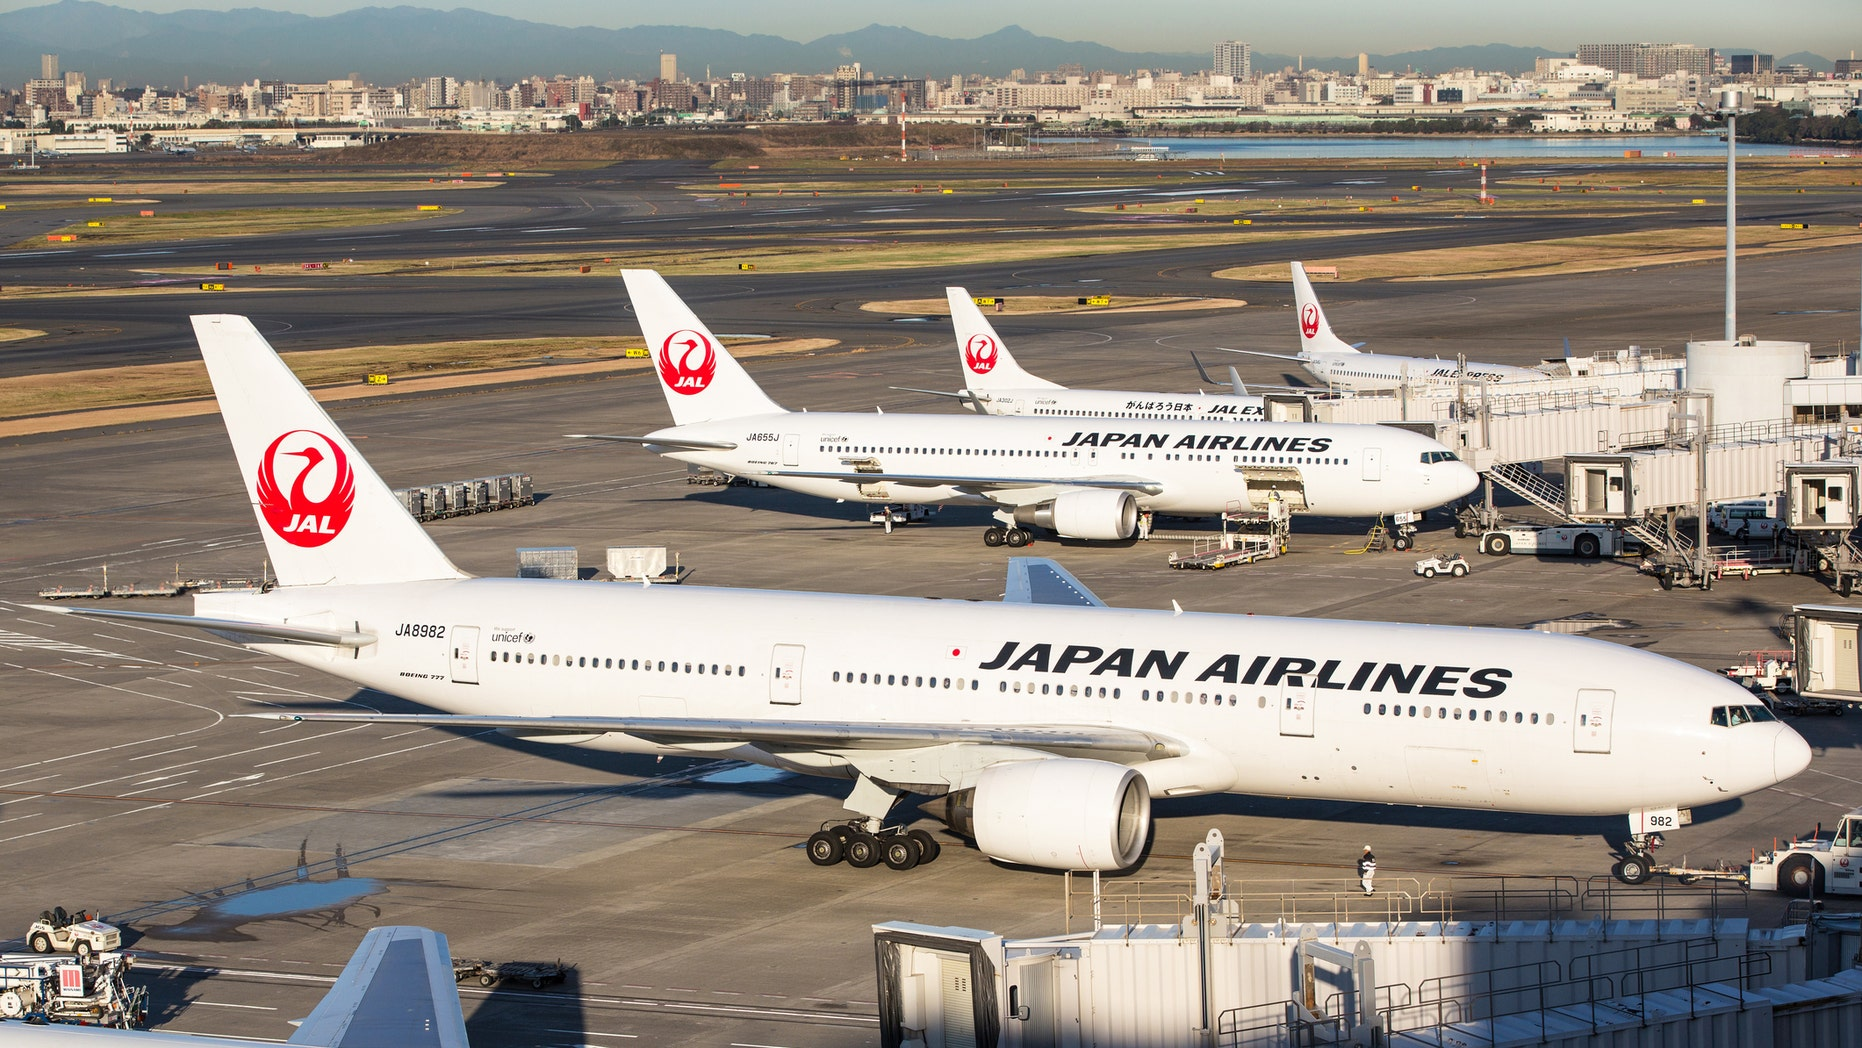 Drunk Japanese pilot arrested at Heathrow Airport